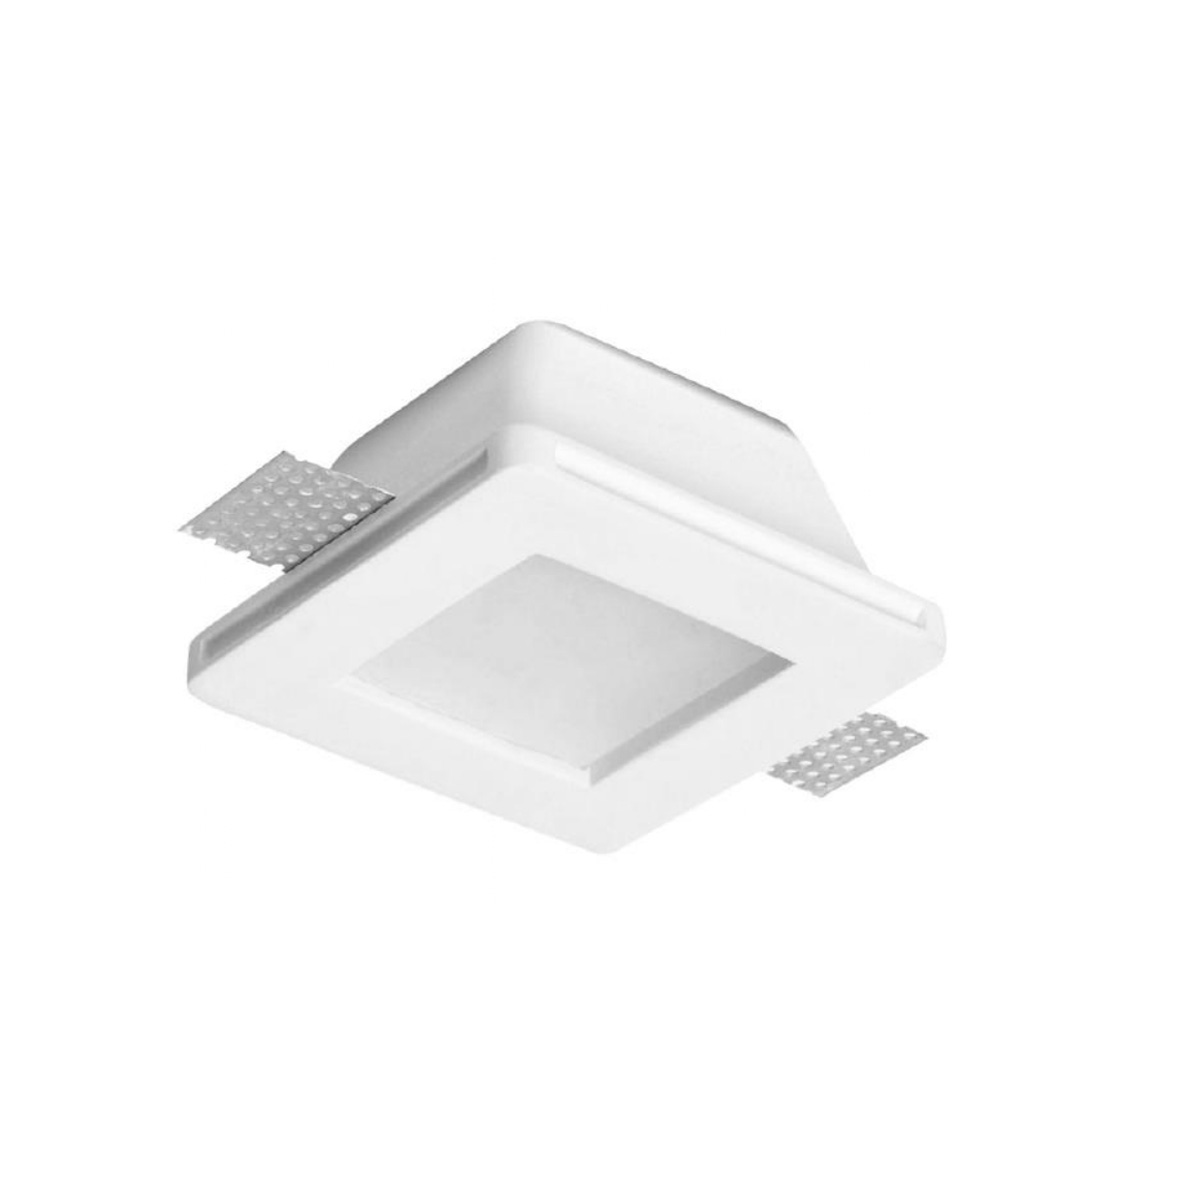 Portafaretto plaster concealed square side 12cm with glass Fi-CHALK-15